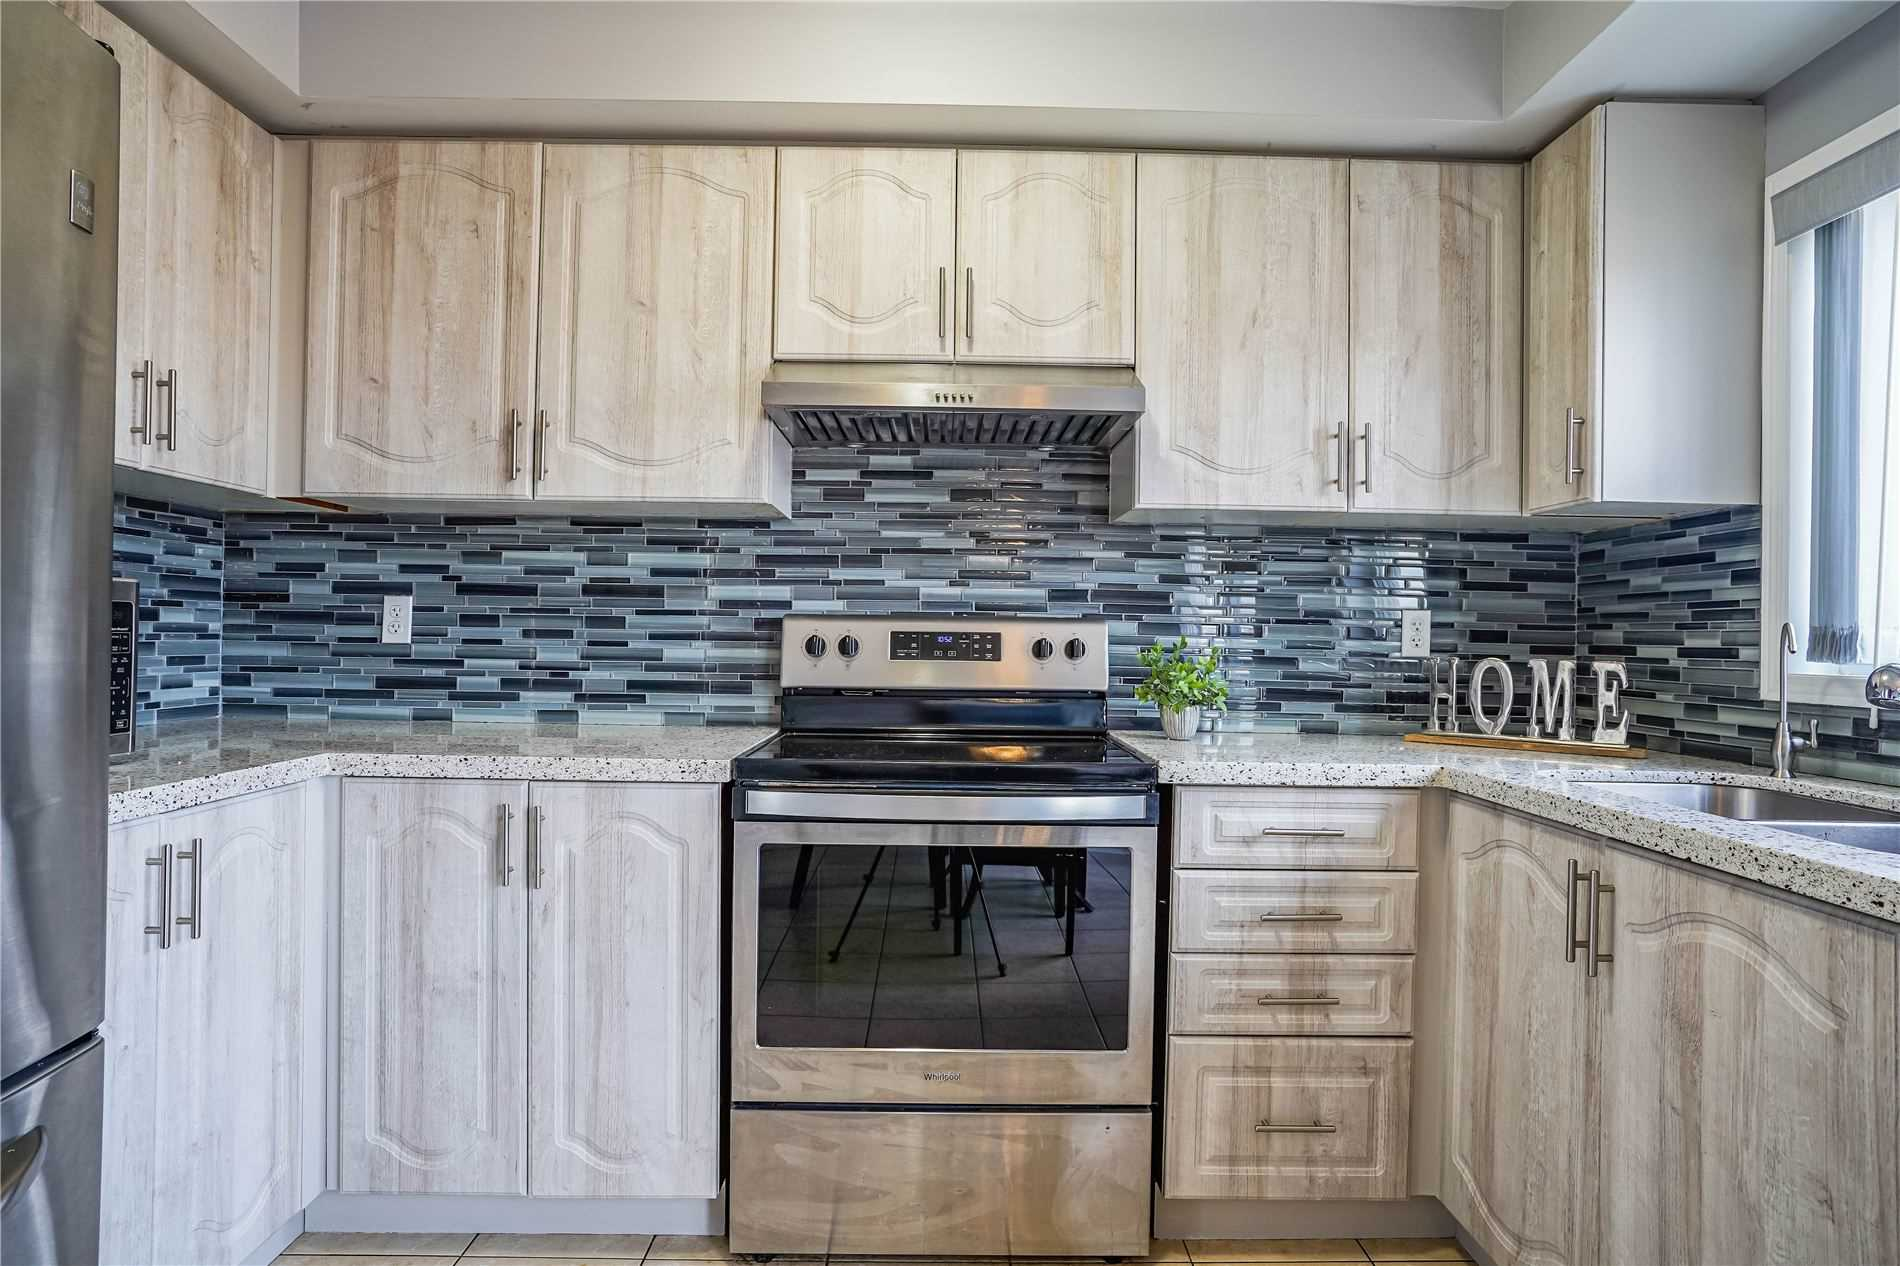 Image 24 of 25 showing inside of 3 Bedroom Condo Townhouse 3-Storey for Sale at 68 Oakins Lane W Unit# 34, Ajax L1T0H1